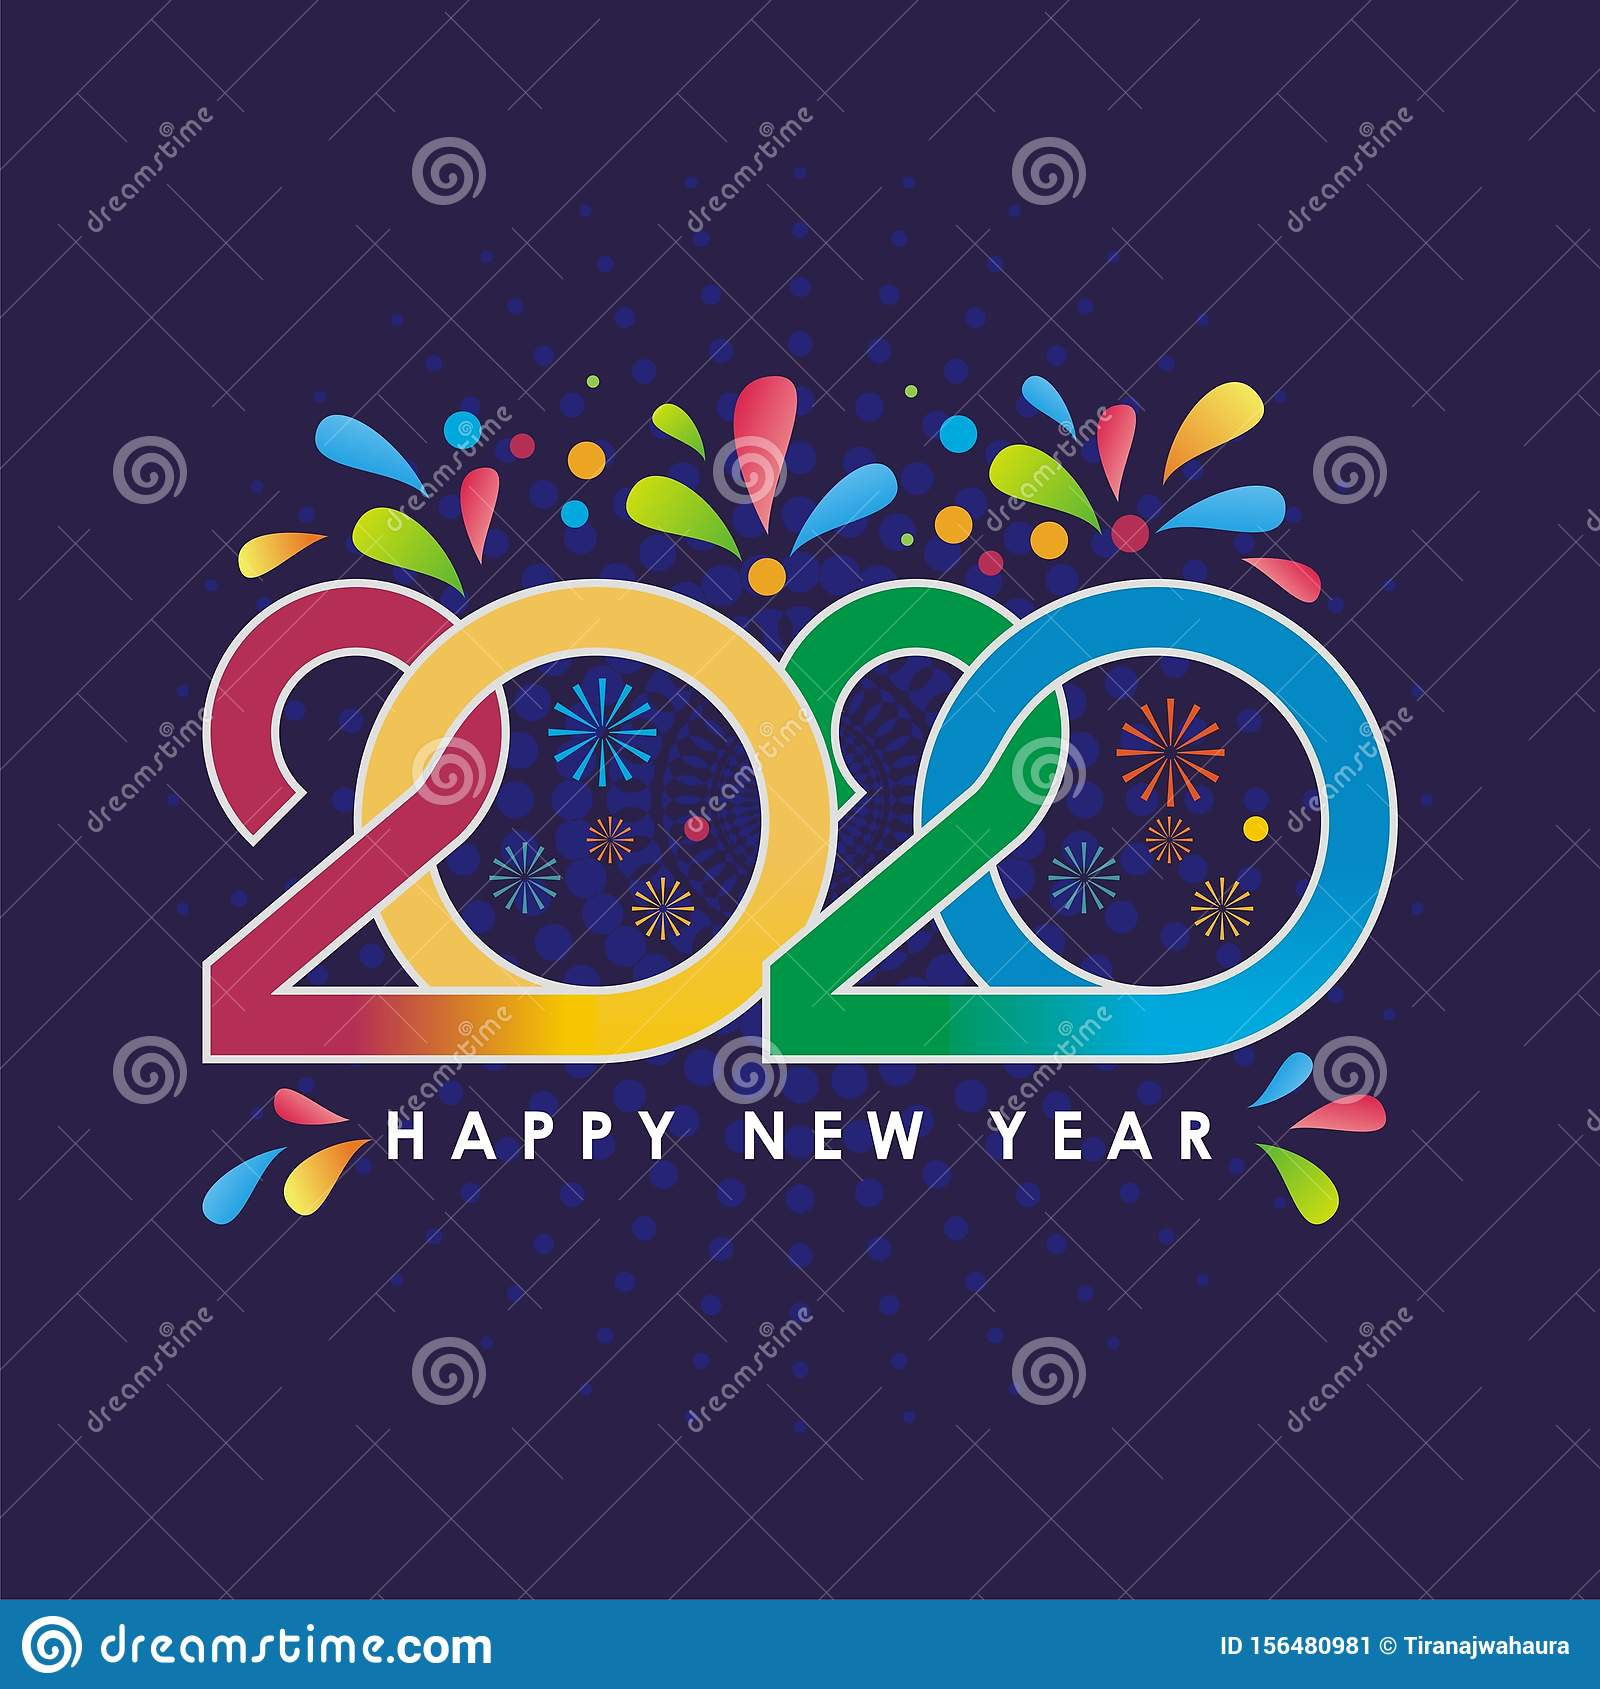 Stylish Happy New Year 2020 Wishes Quotes Messages Stock Vector Illustration Of December Annual 156480981